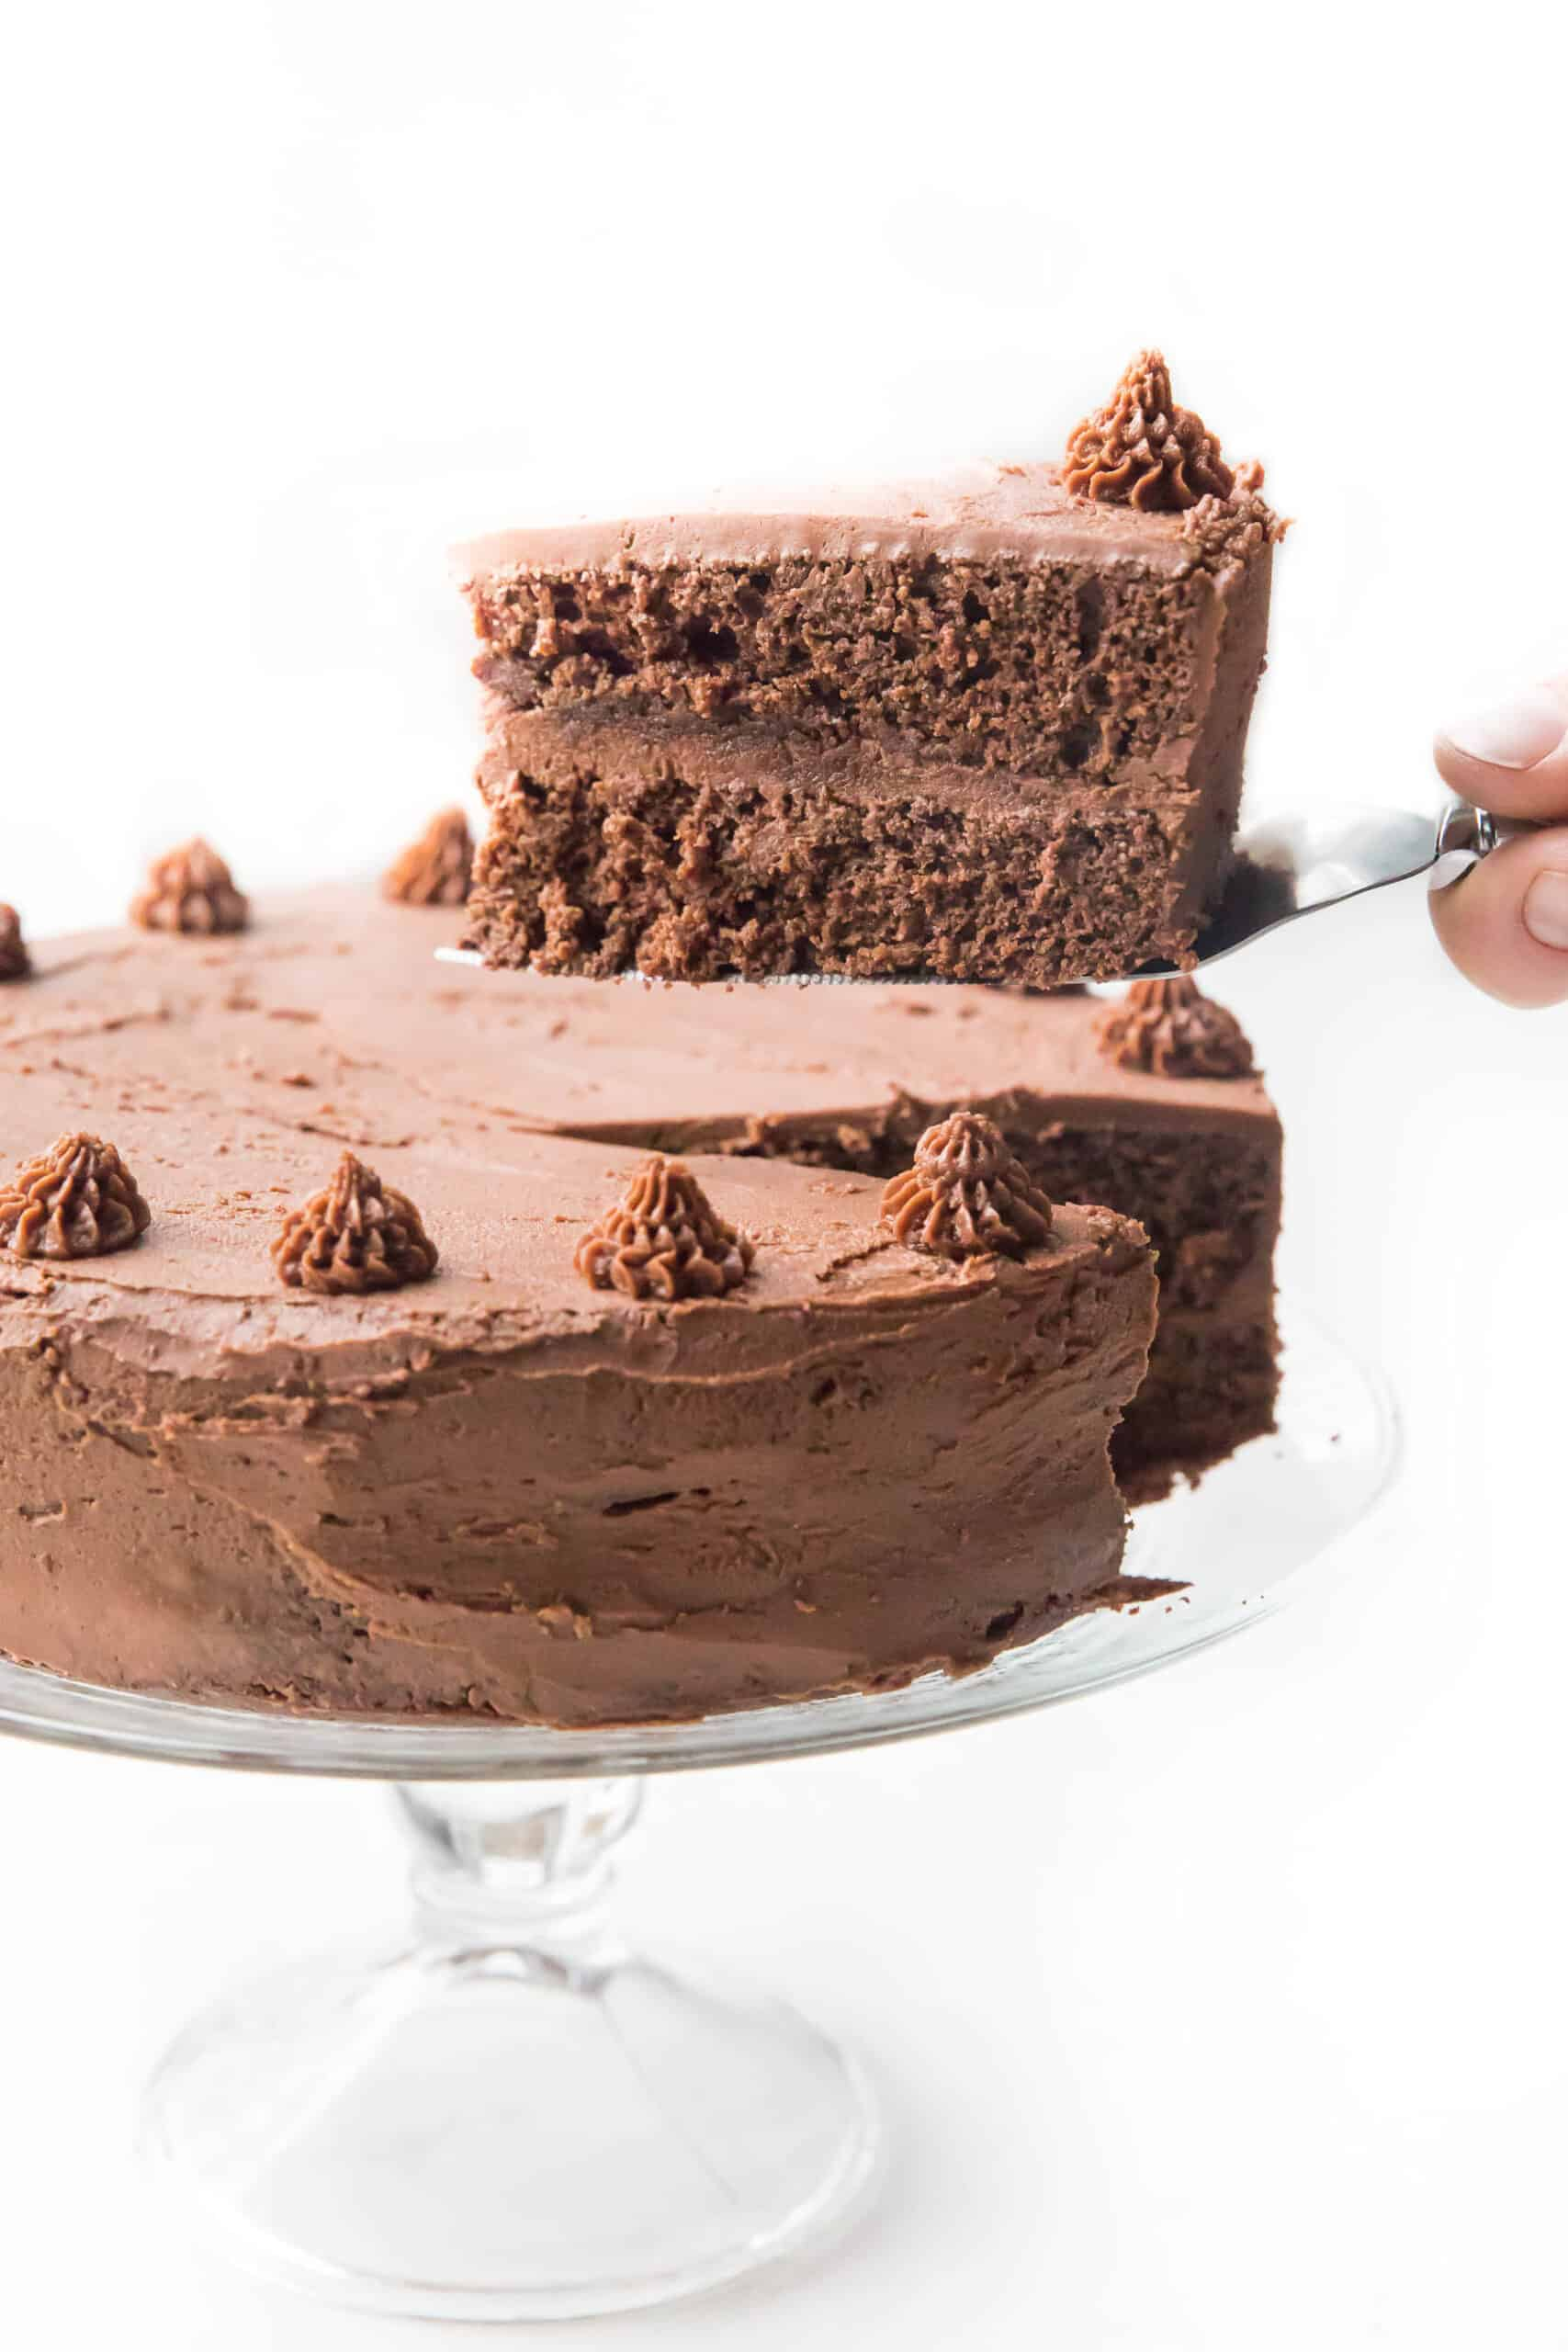 Lifting a slice of chocolate cake